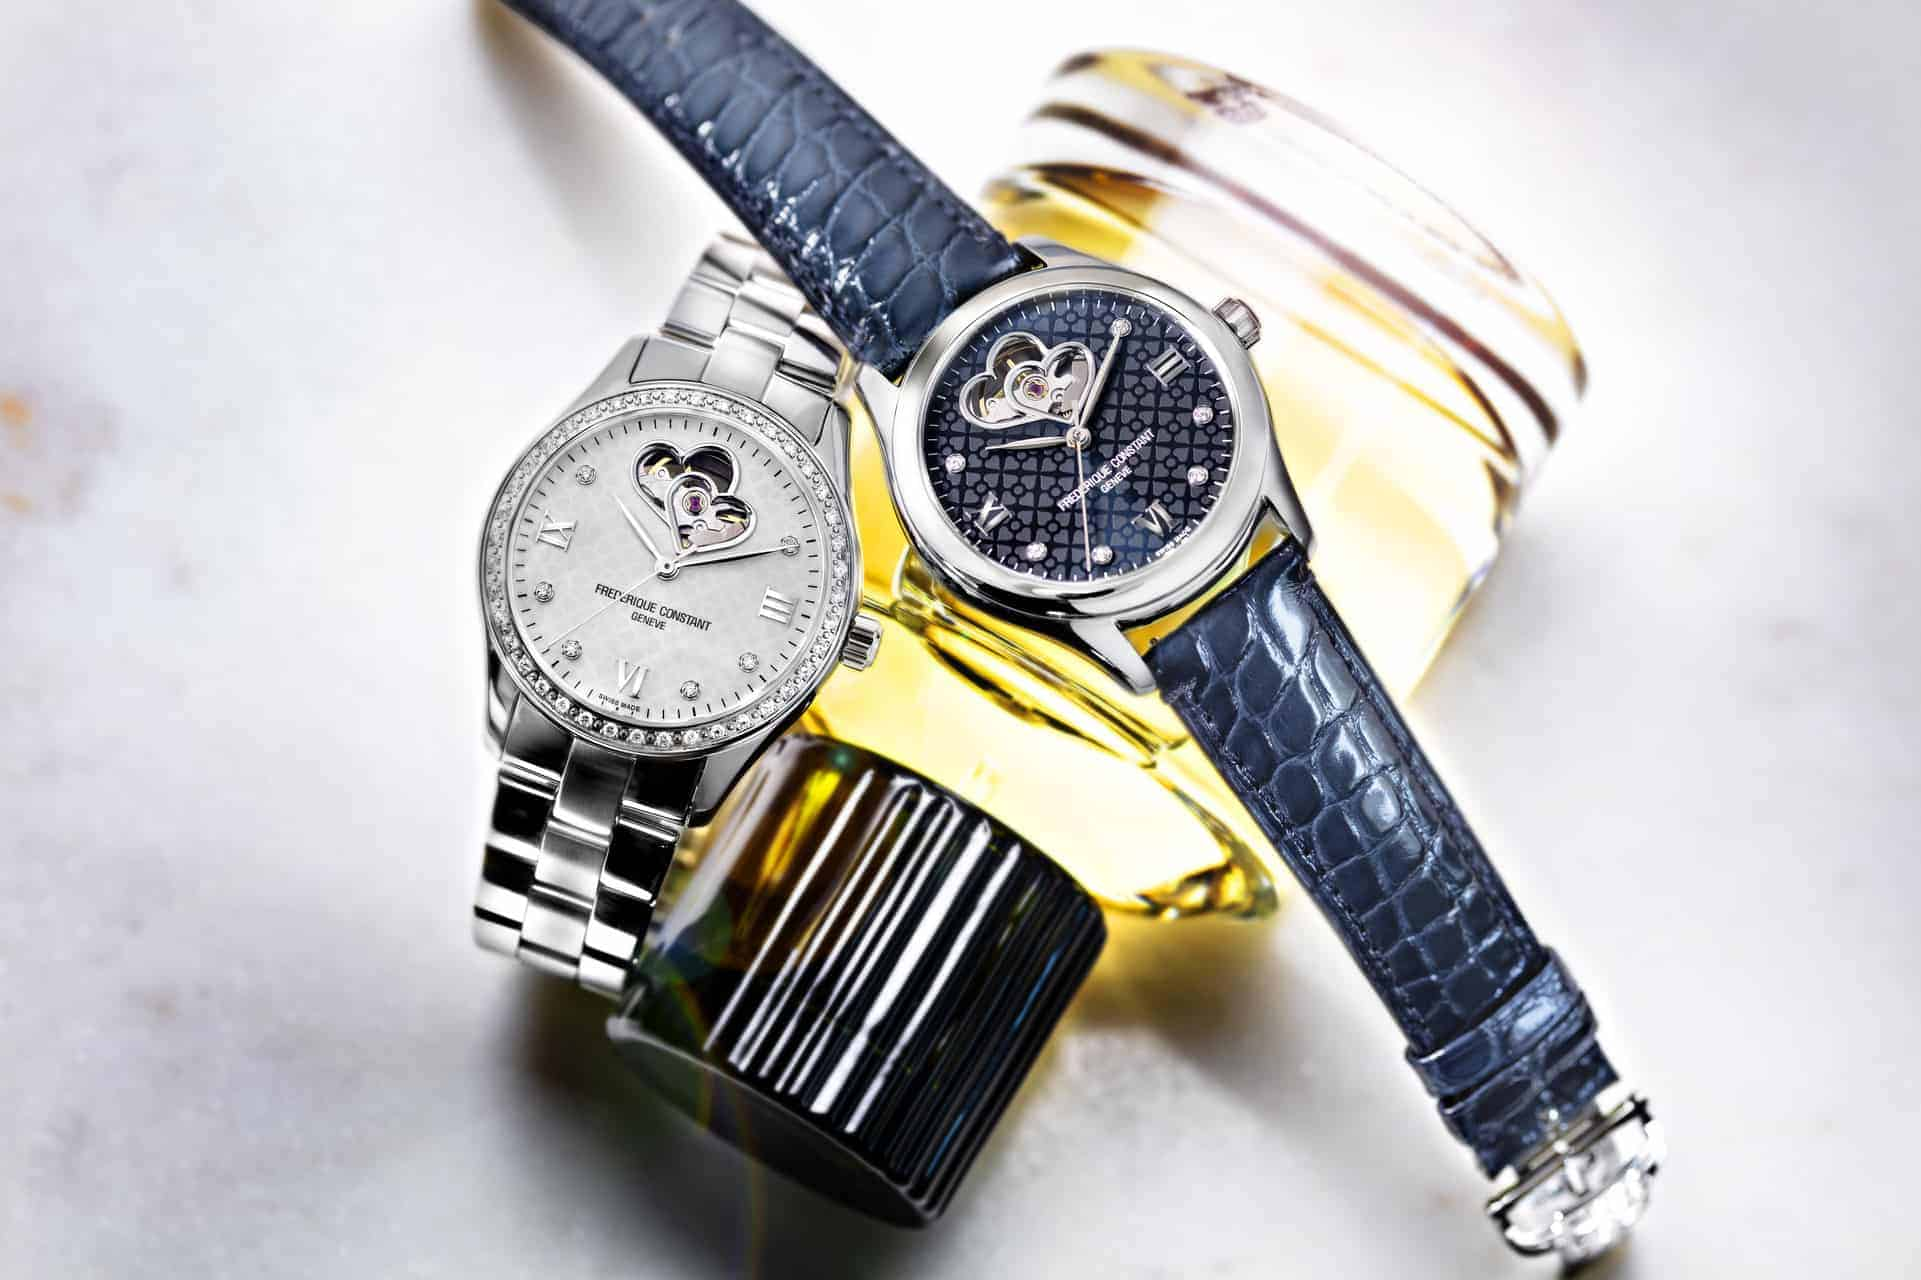 Frederique Constant Ladies Automatic: the new signature timepieces